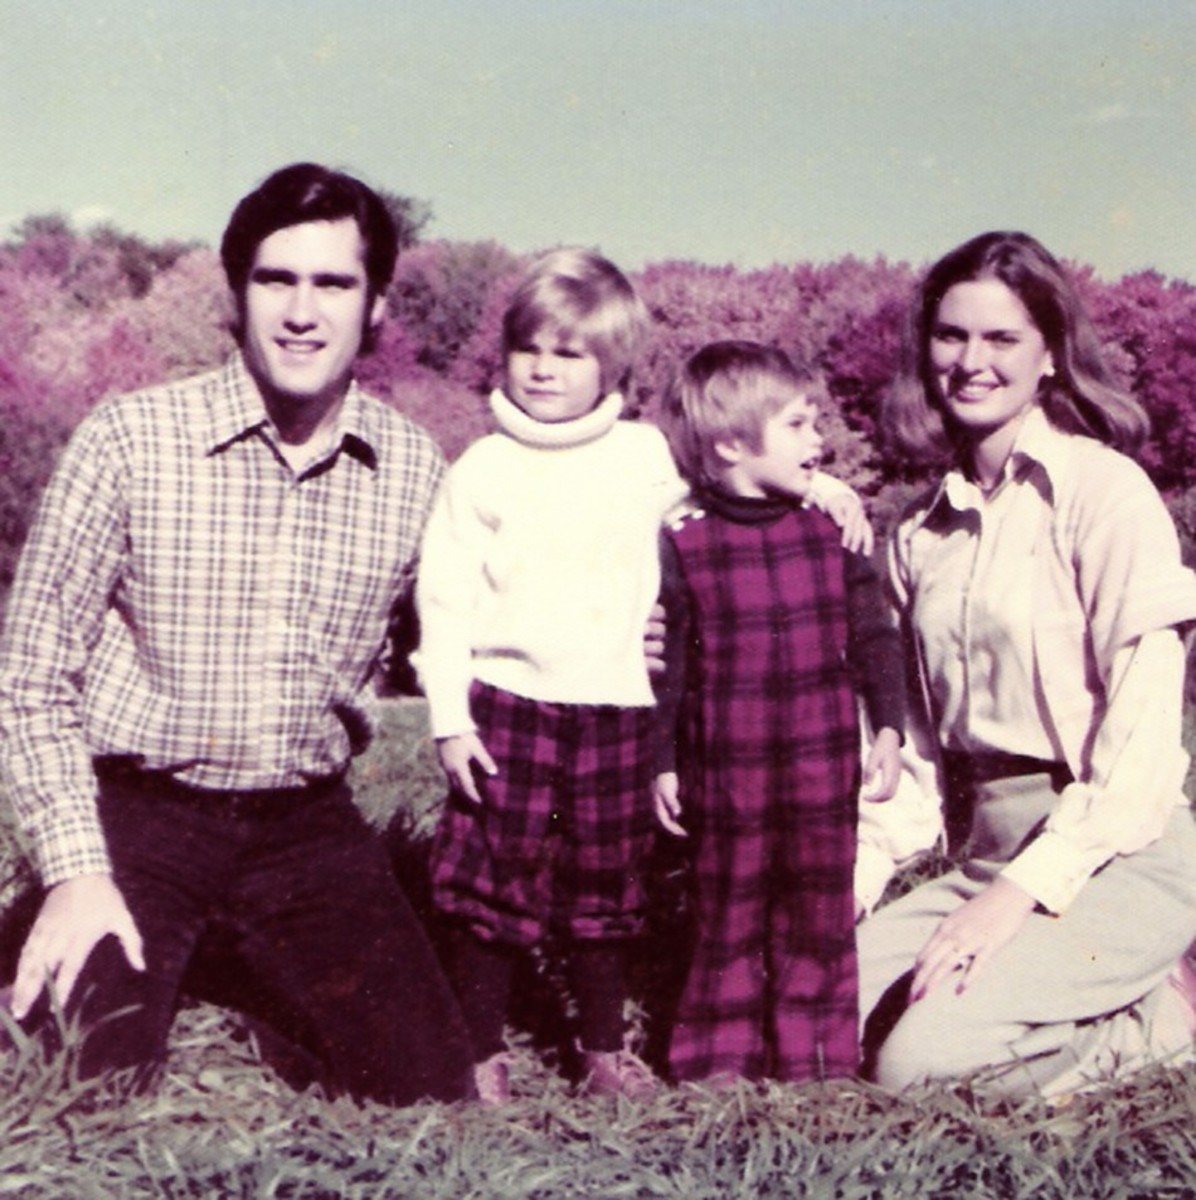 Typical down to earth Romney Photo Long Before His Political Run